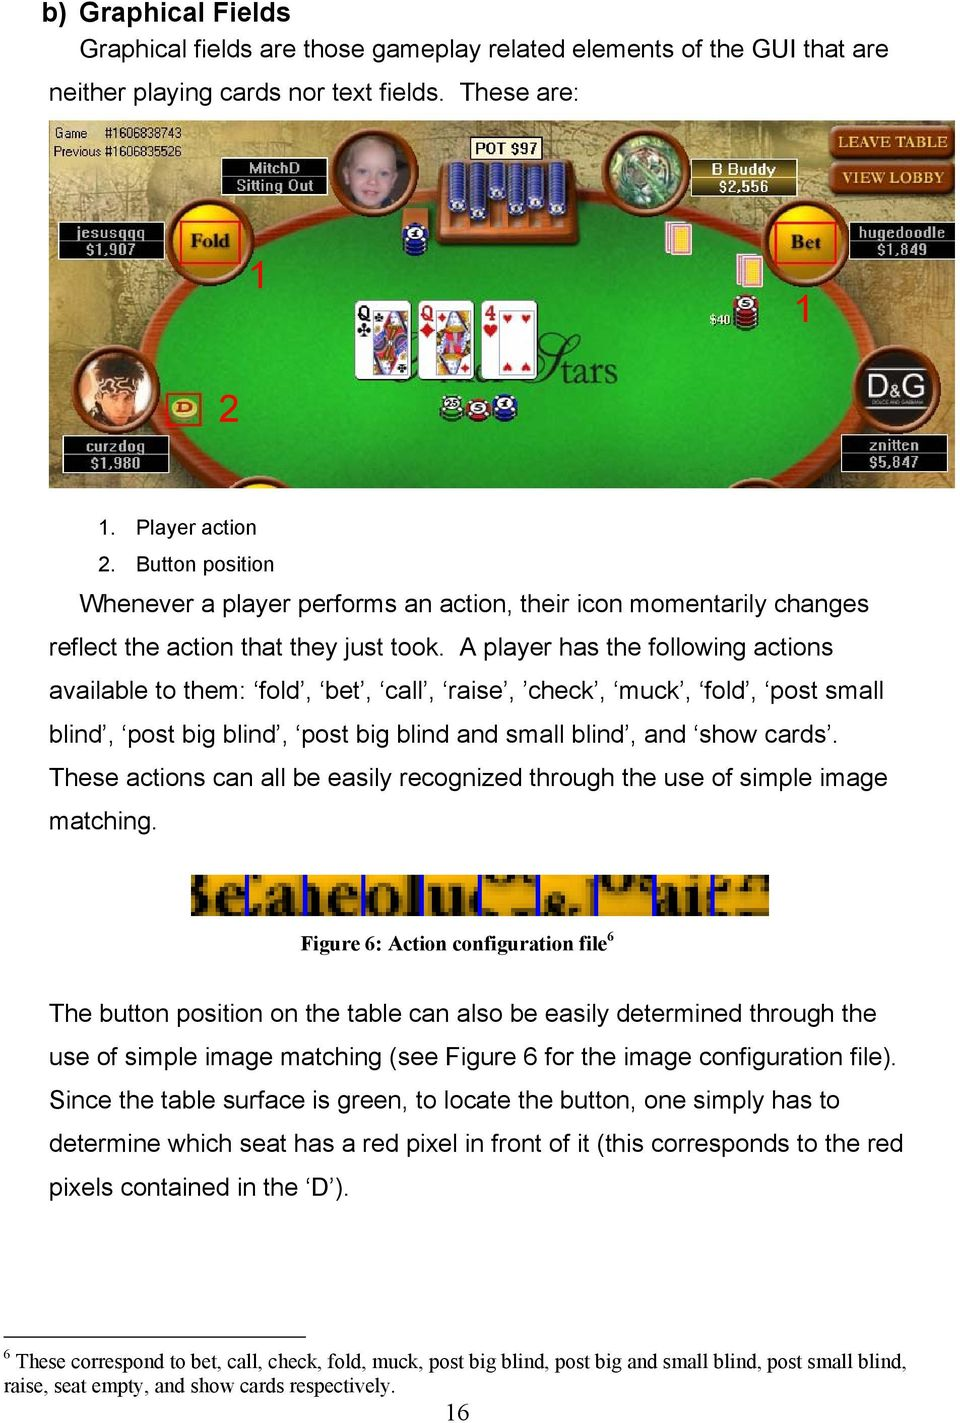 A player has the following actions available to them: fold, bet, call, raise, check, muck, fold, post small blind, post big blind, post big blind and small blind, and show cards.